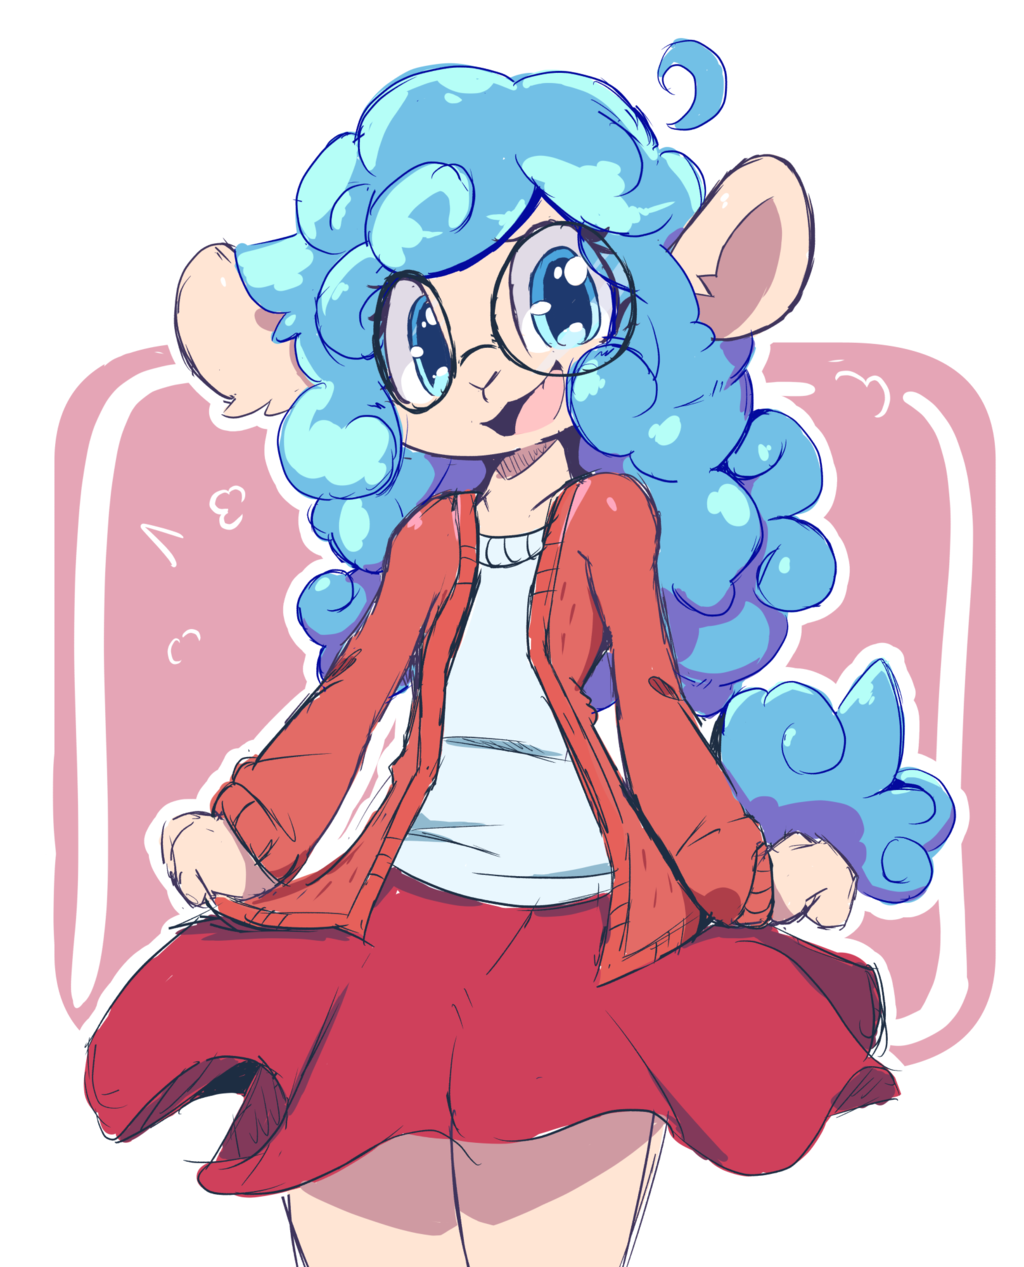 Most recent image: Sheep-sized Sheepy